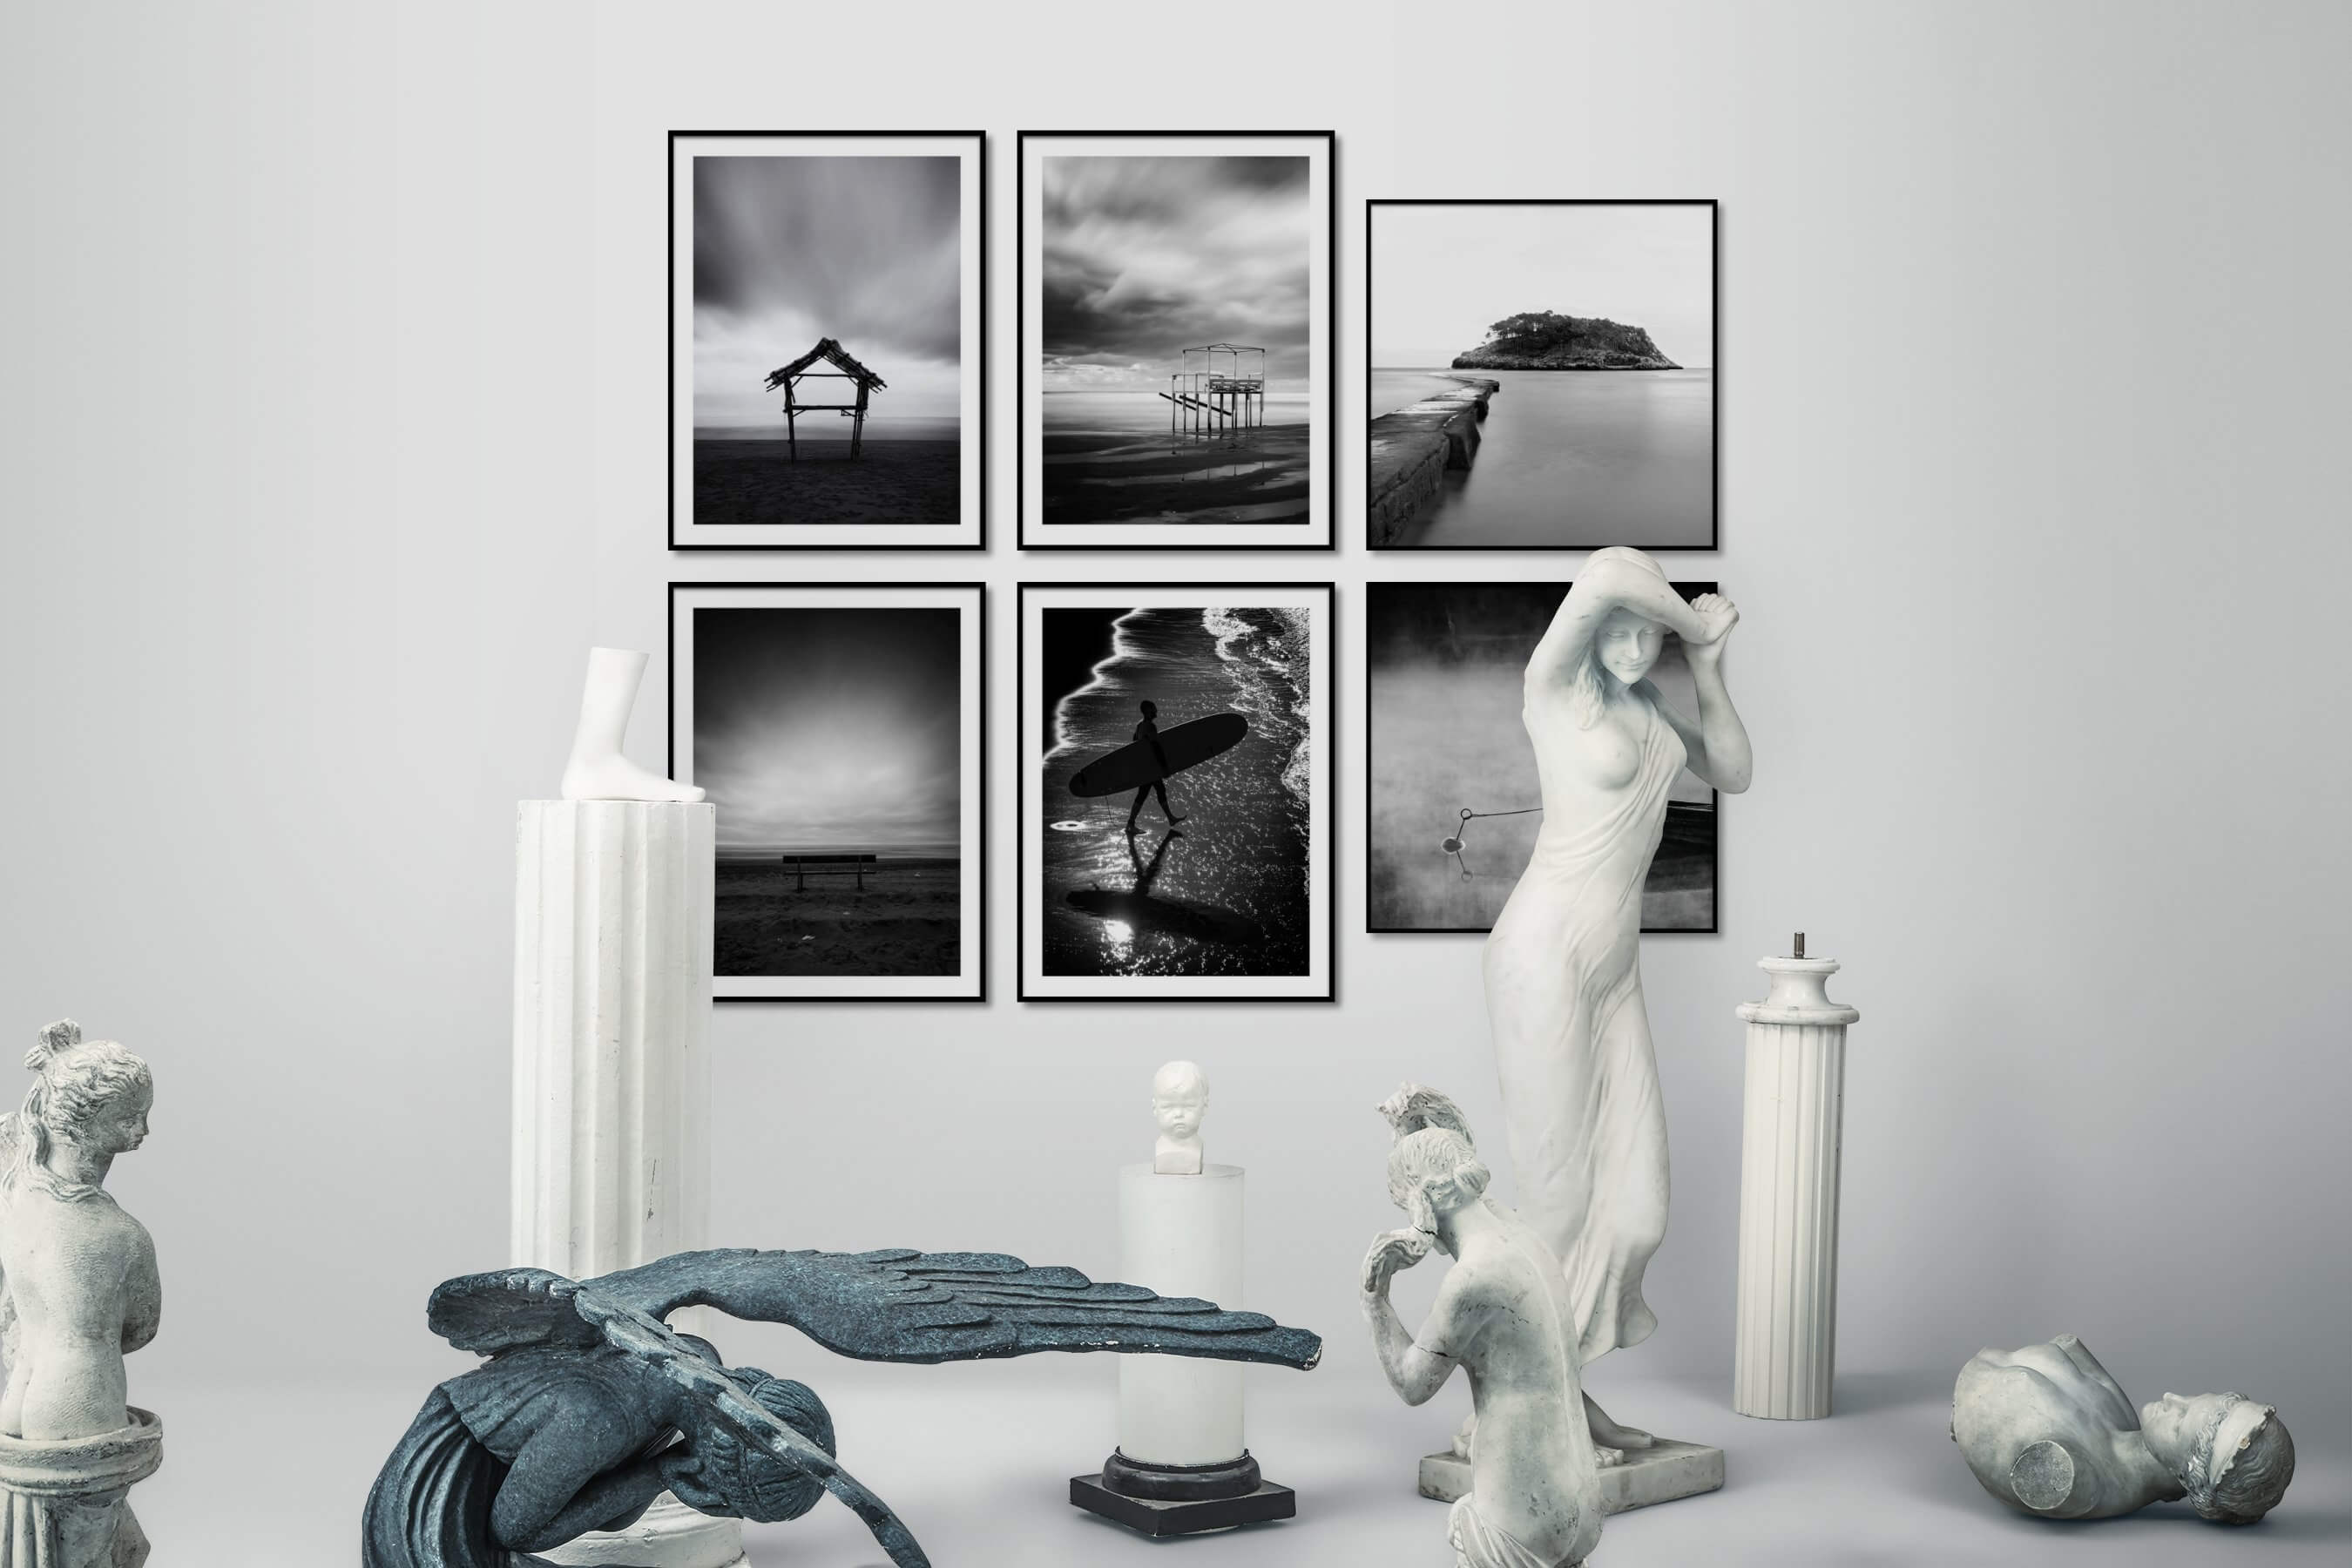 Gallery wall idea with six framed pictures arranged on a wall depicting Black & White, For the Minimalist, Beach & Water, Mindfulness, and For the Moderate